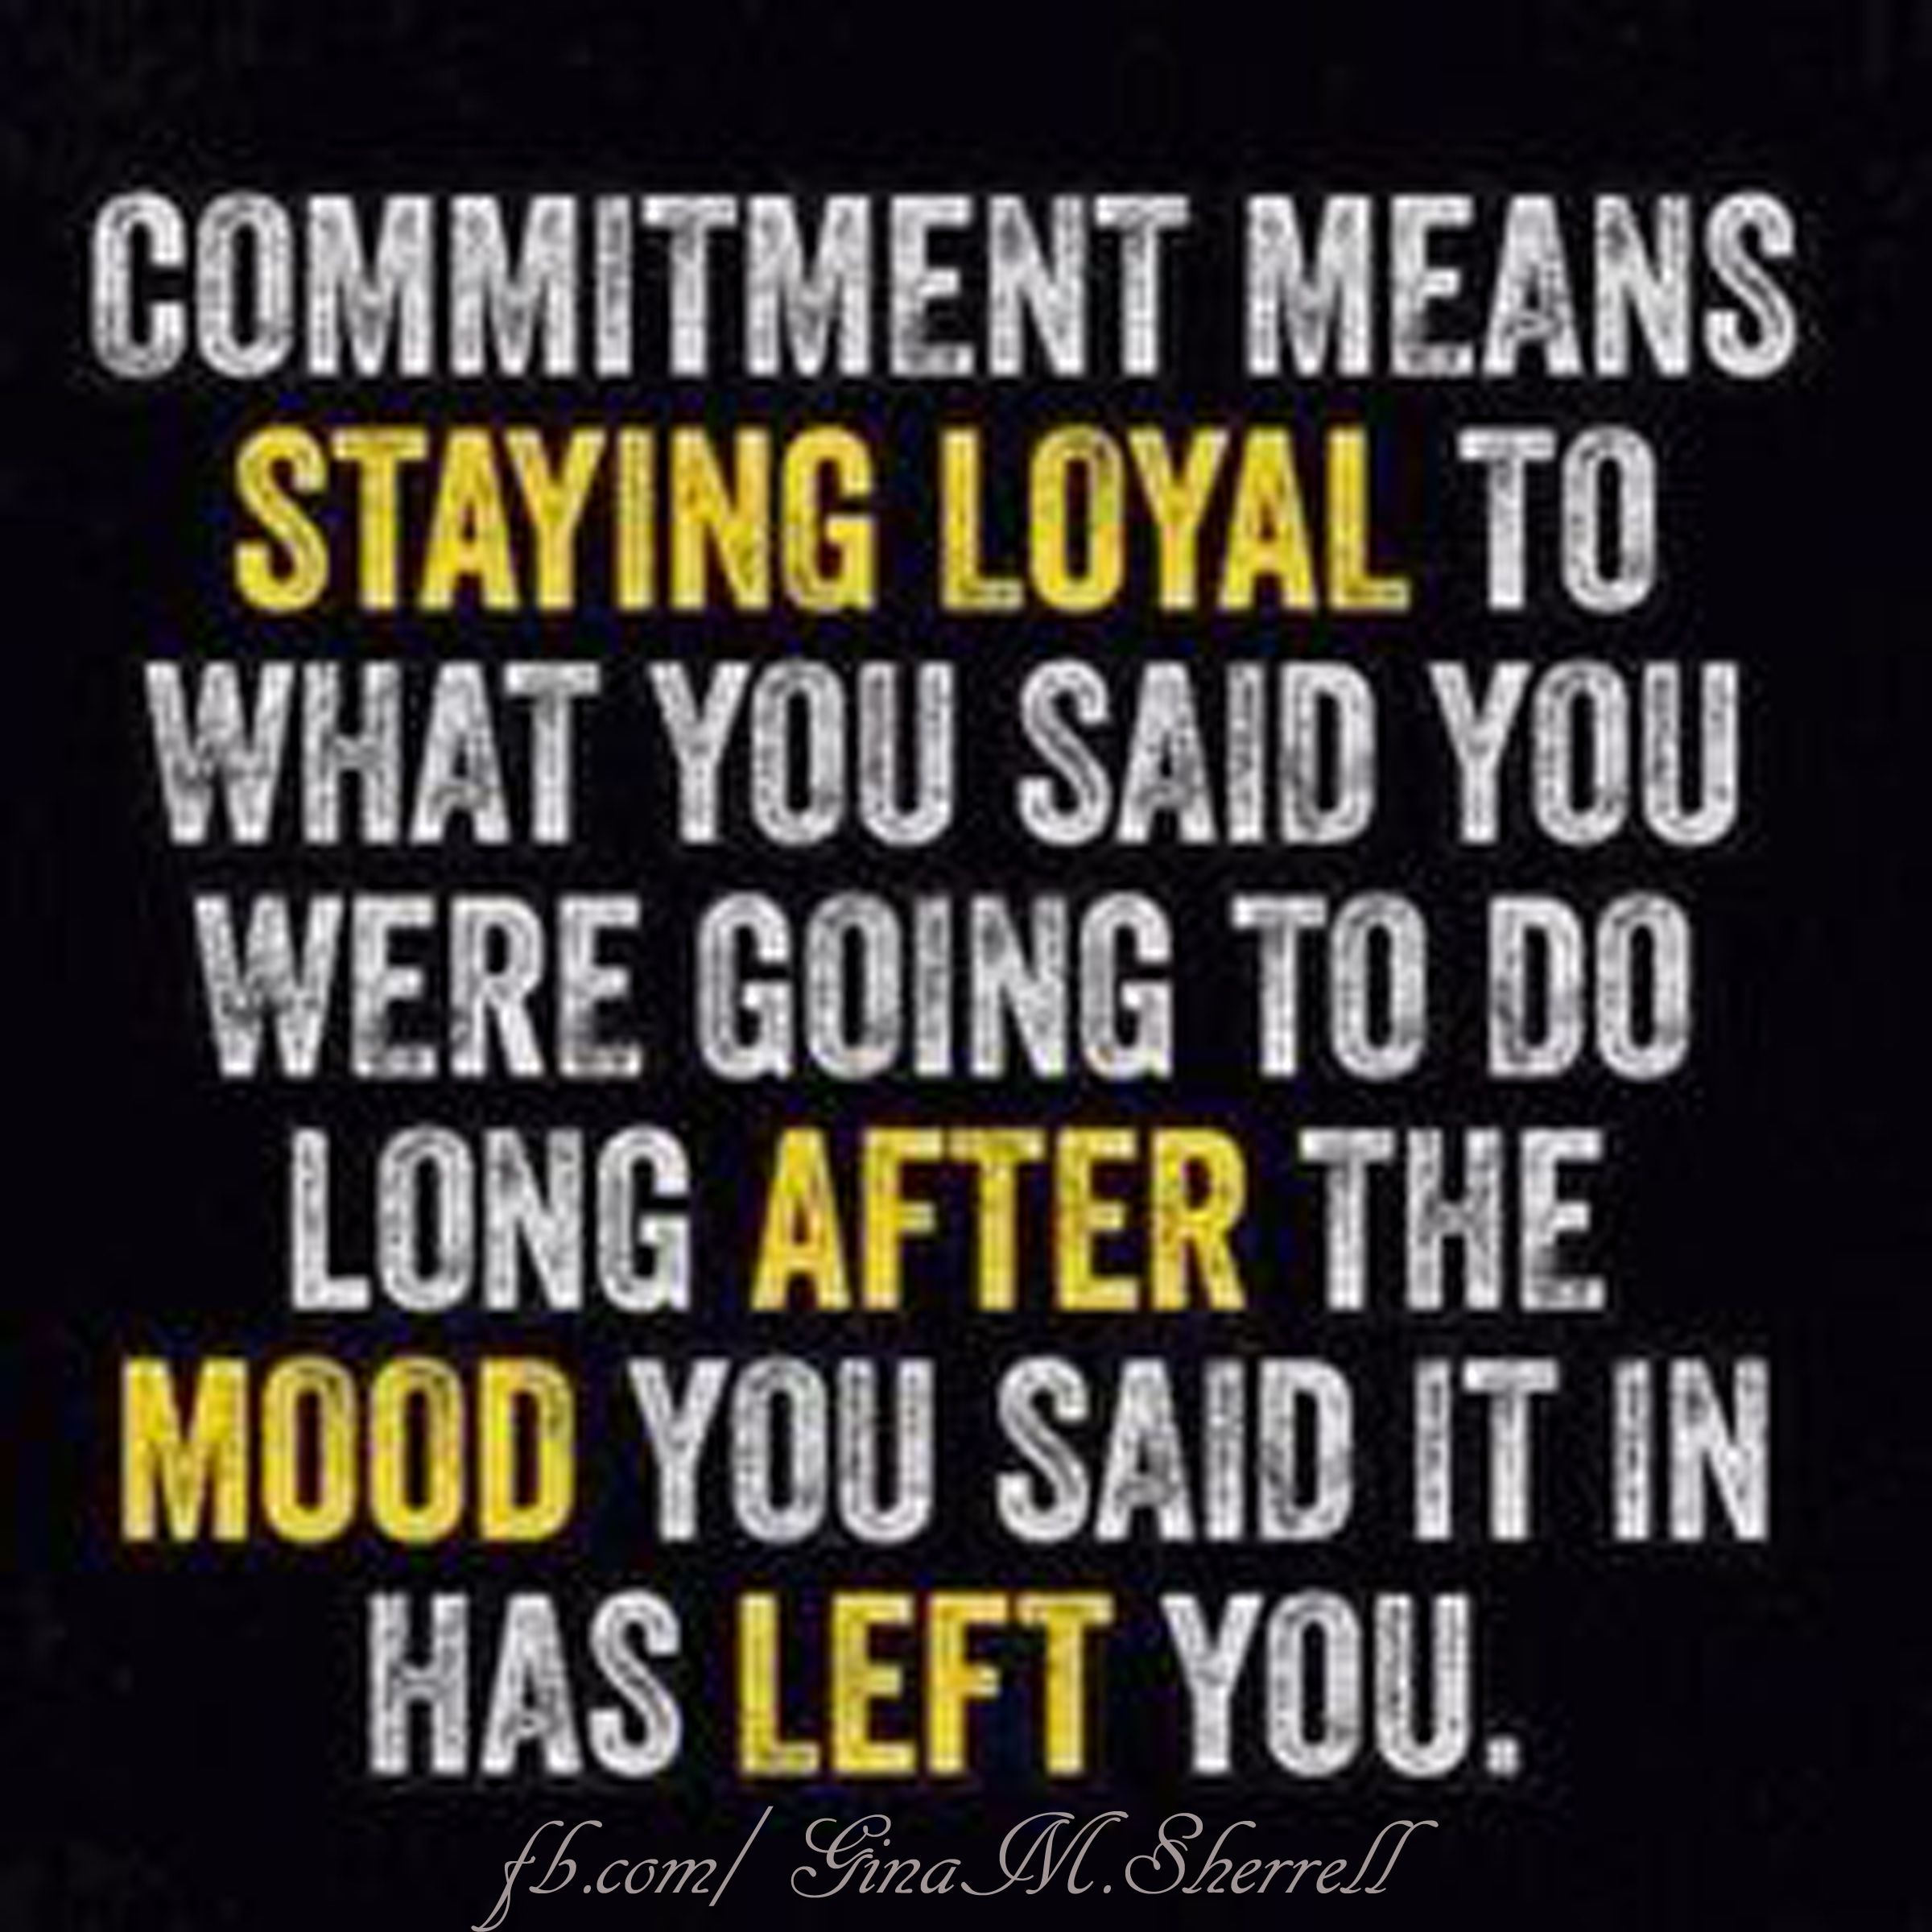 Stay committed to what you know is GOOD for you!